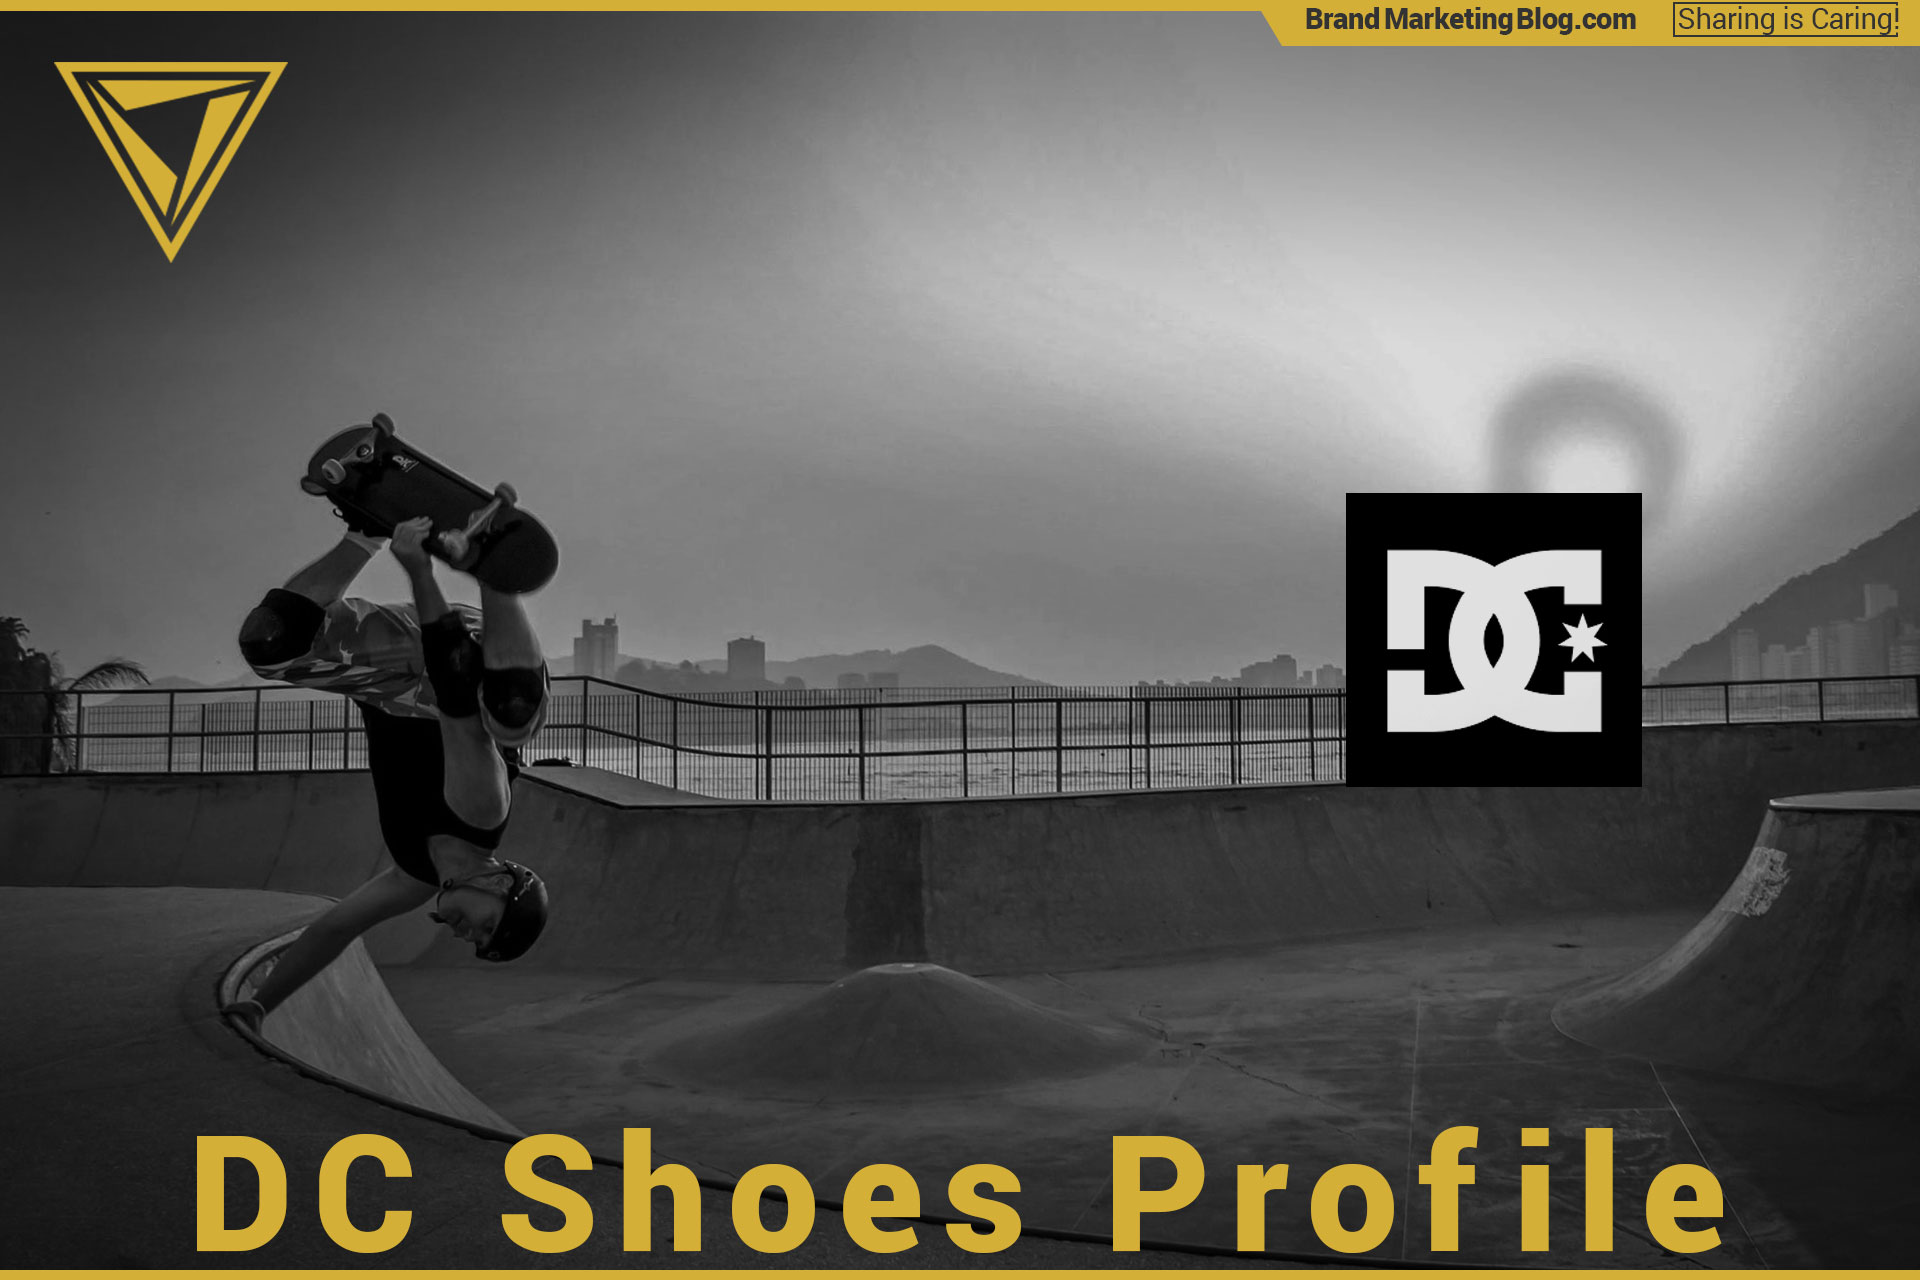 DC Shoes Brand Profile. A man skateboarding doing an inversion trick at sunset in a skate park.